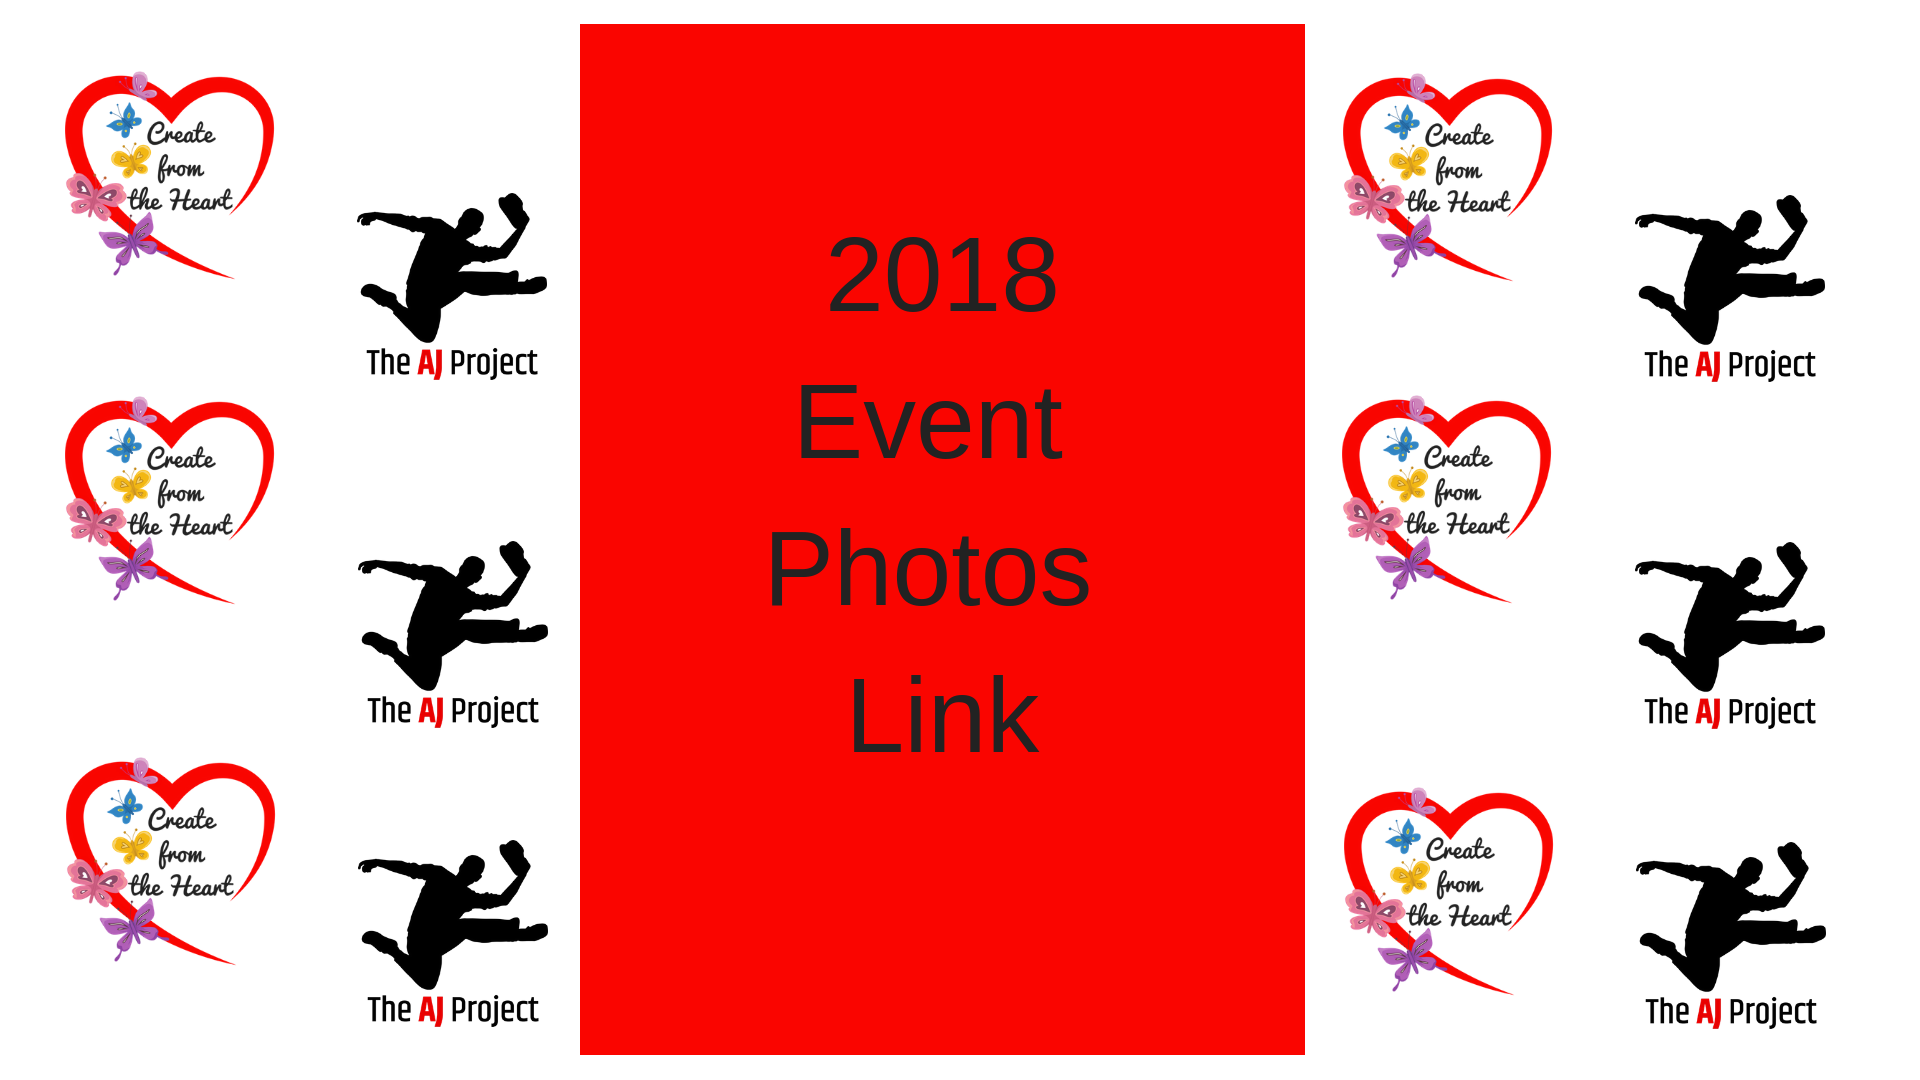 2018_event_photos_Link.png